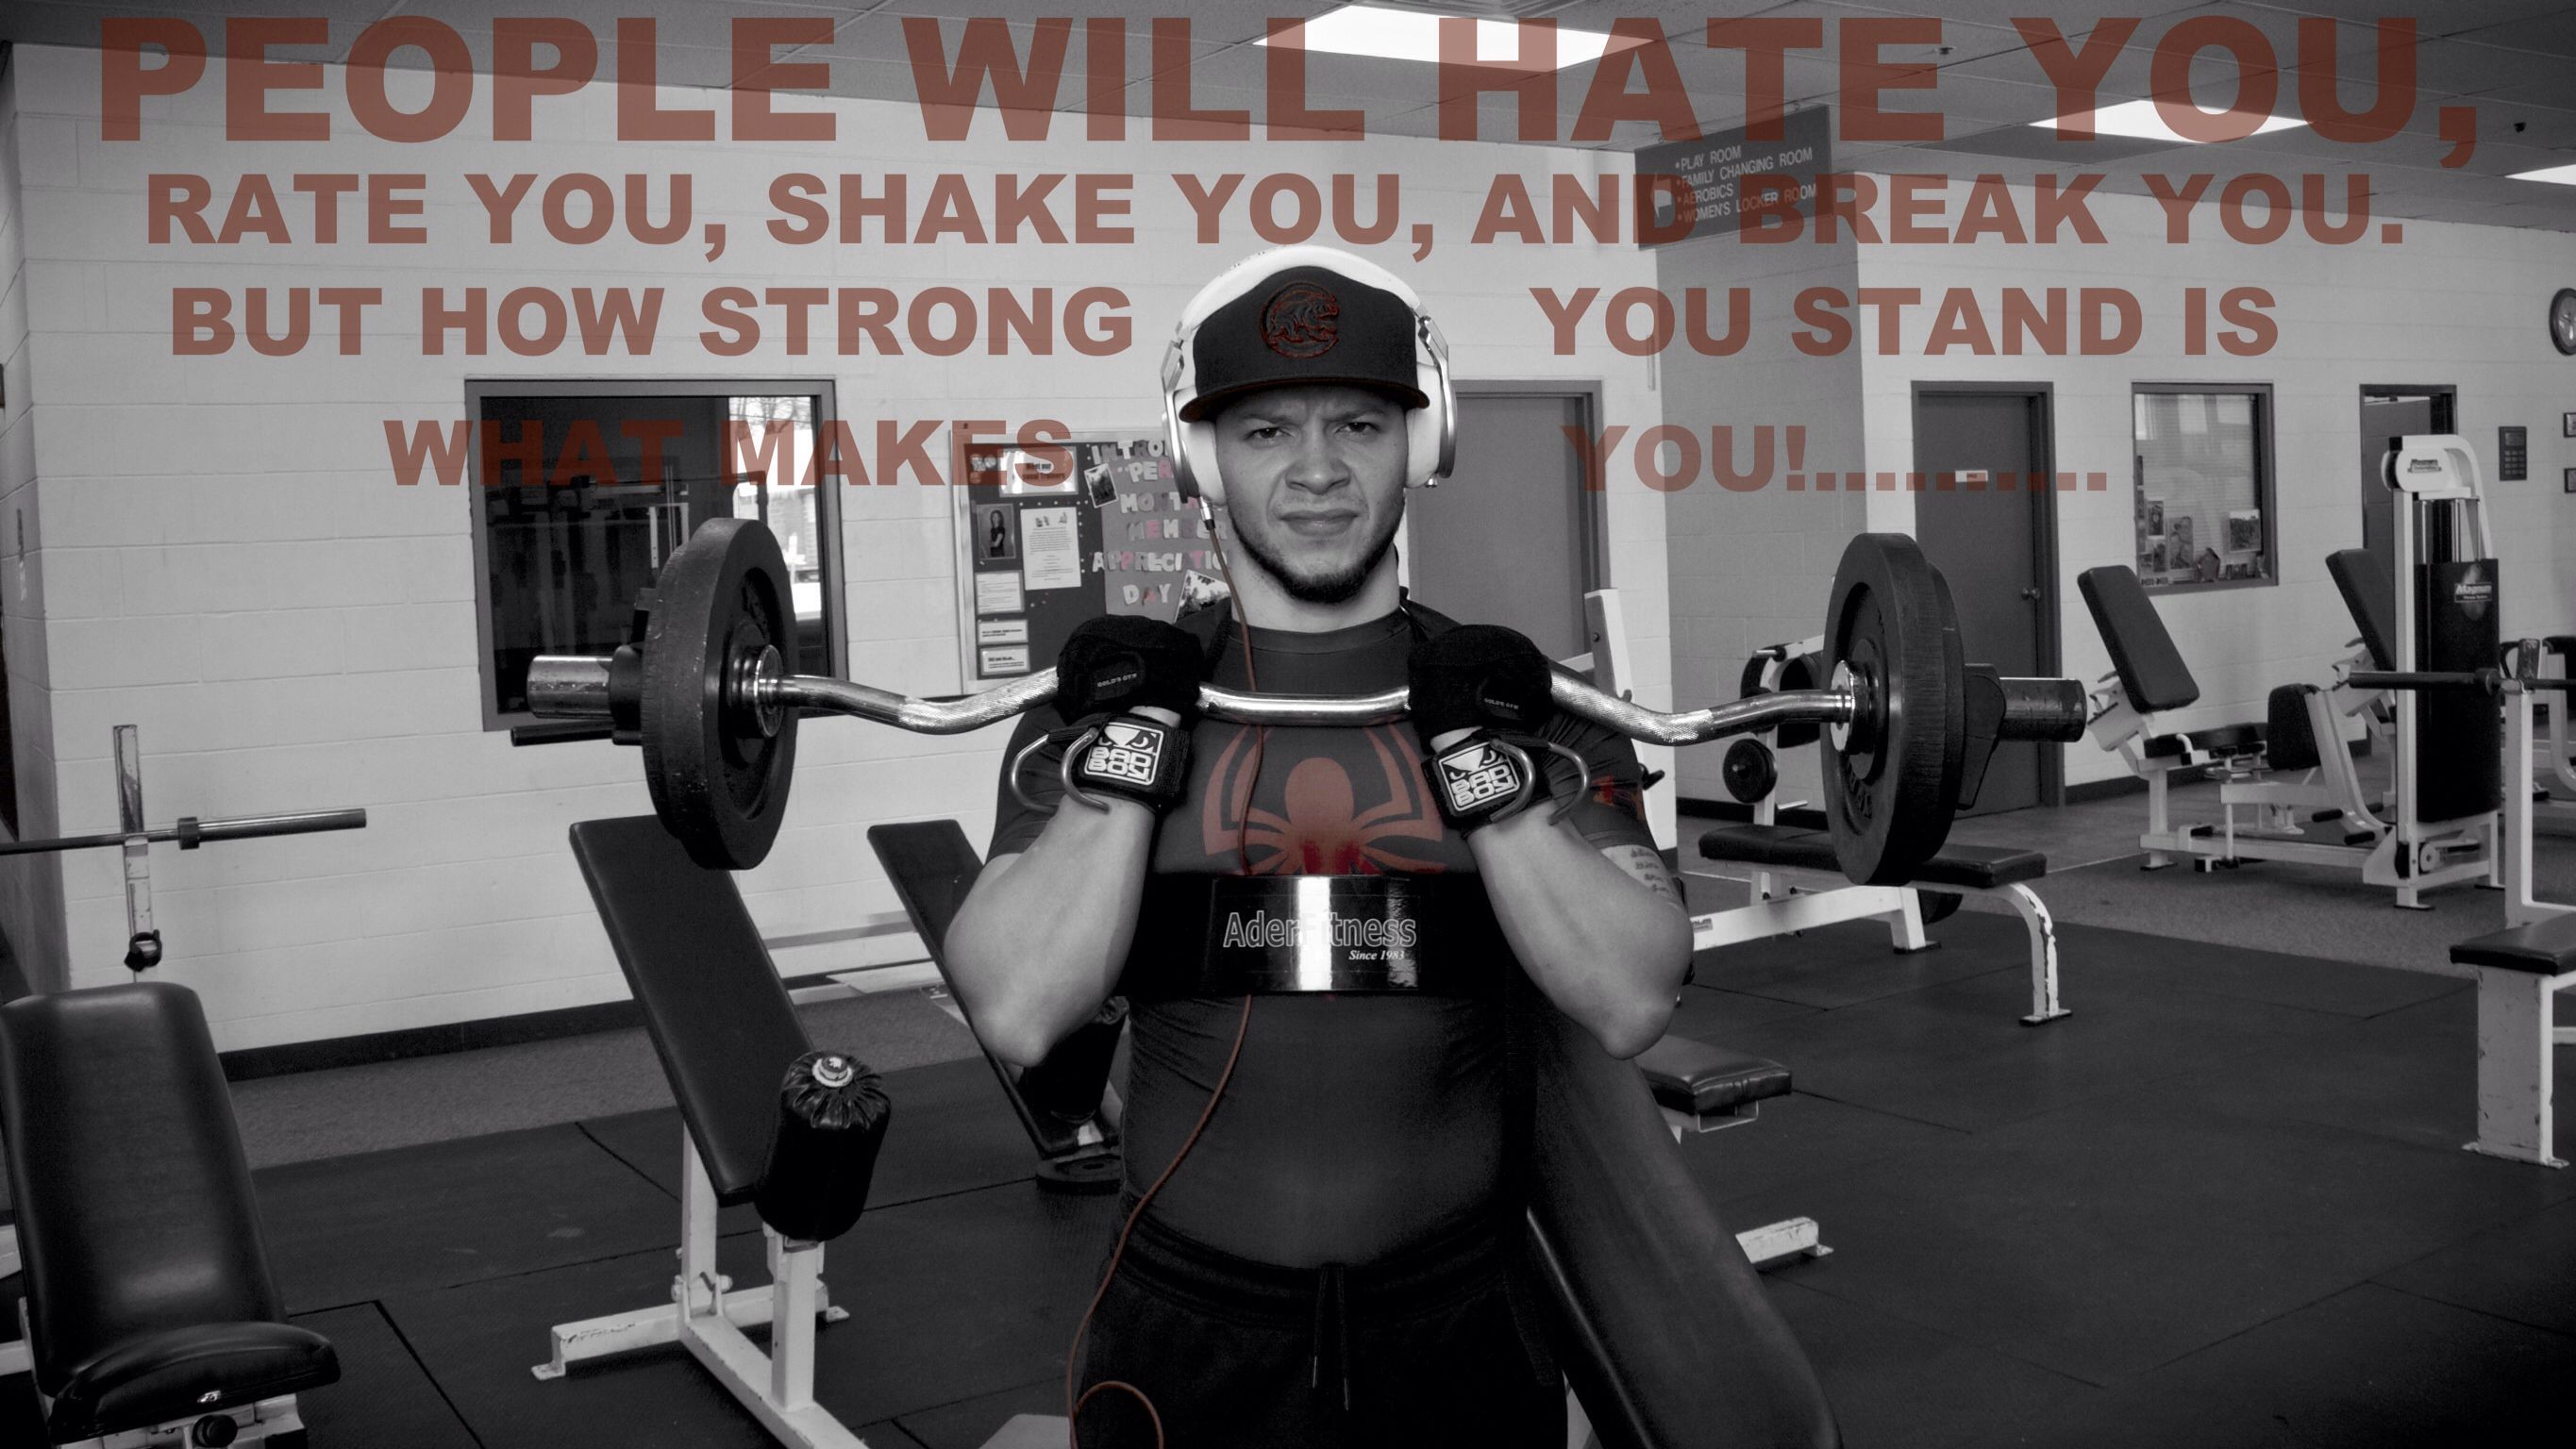 How Strong Are You Gym Quote King Fitness Gym